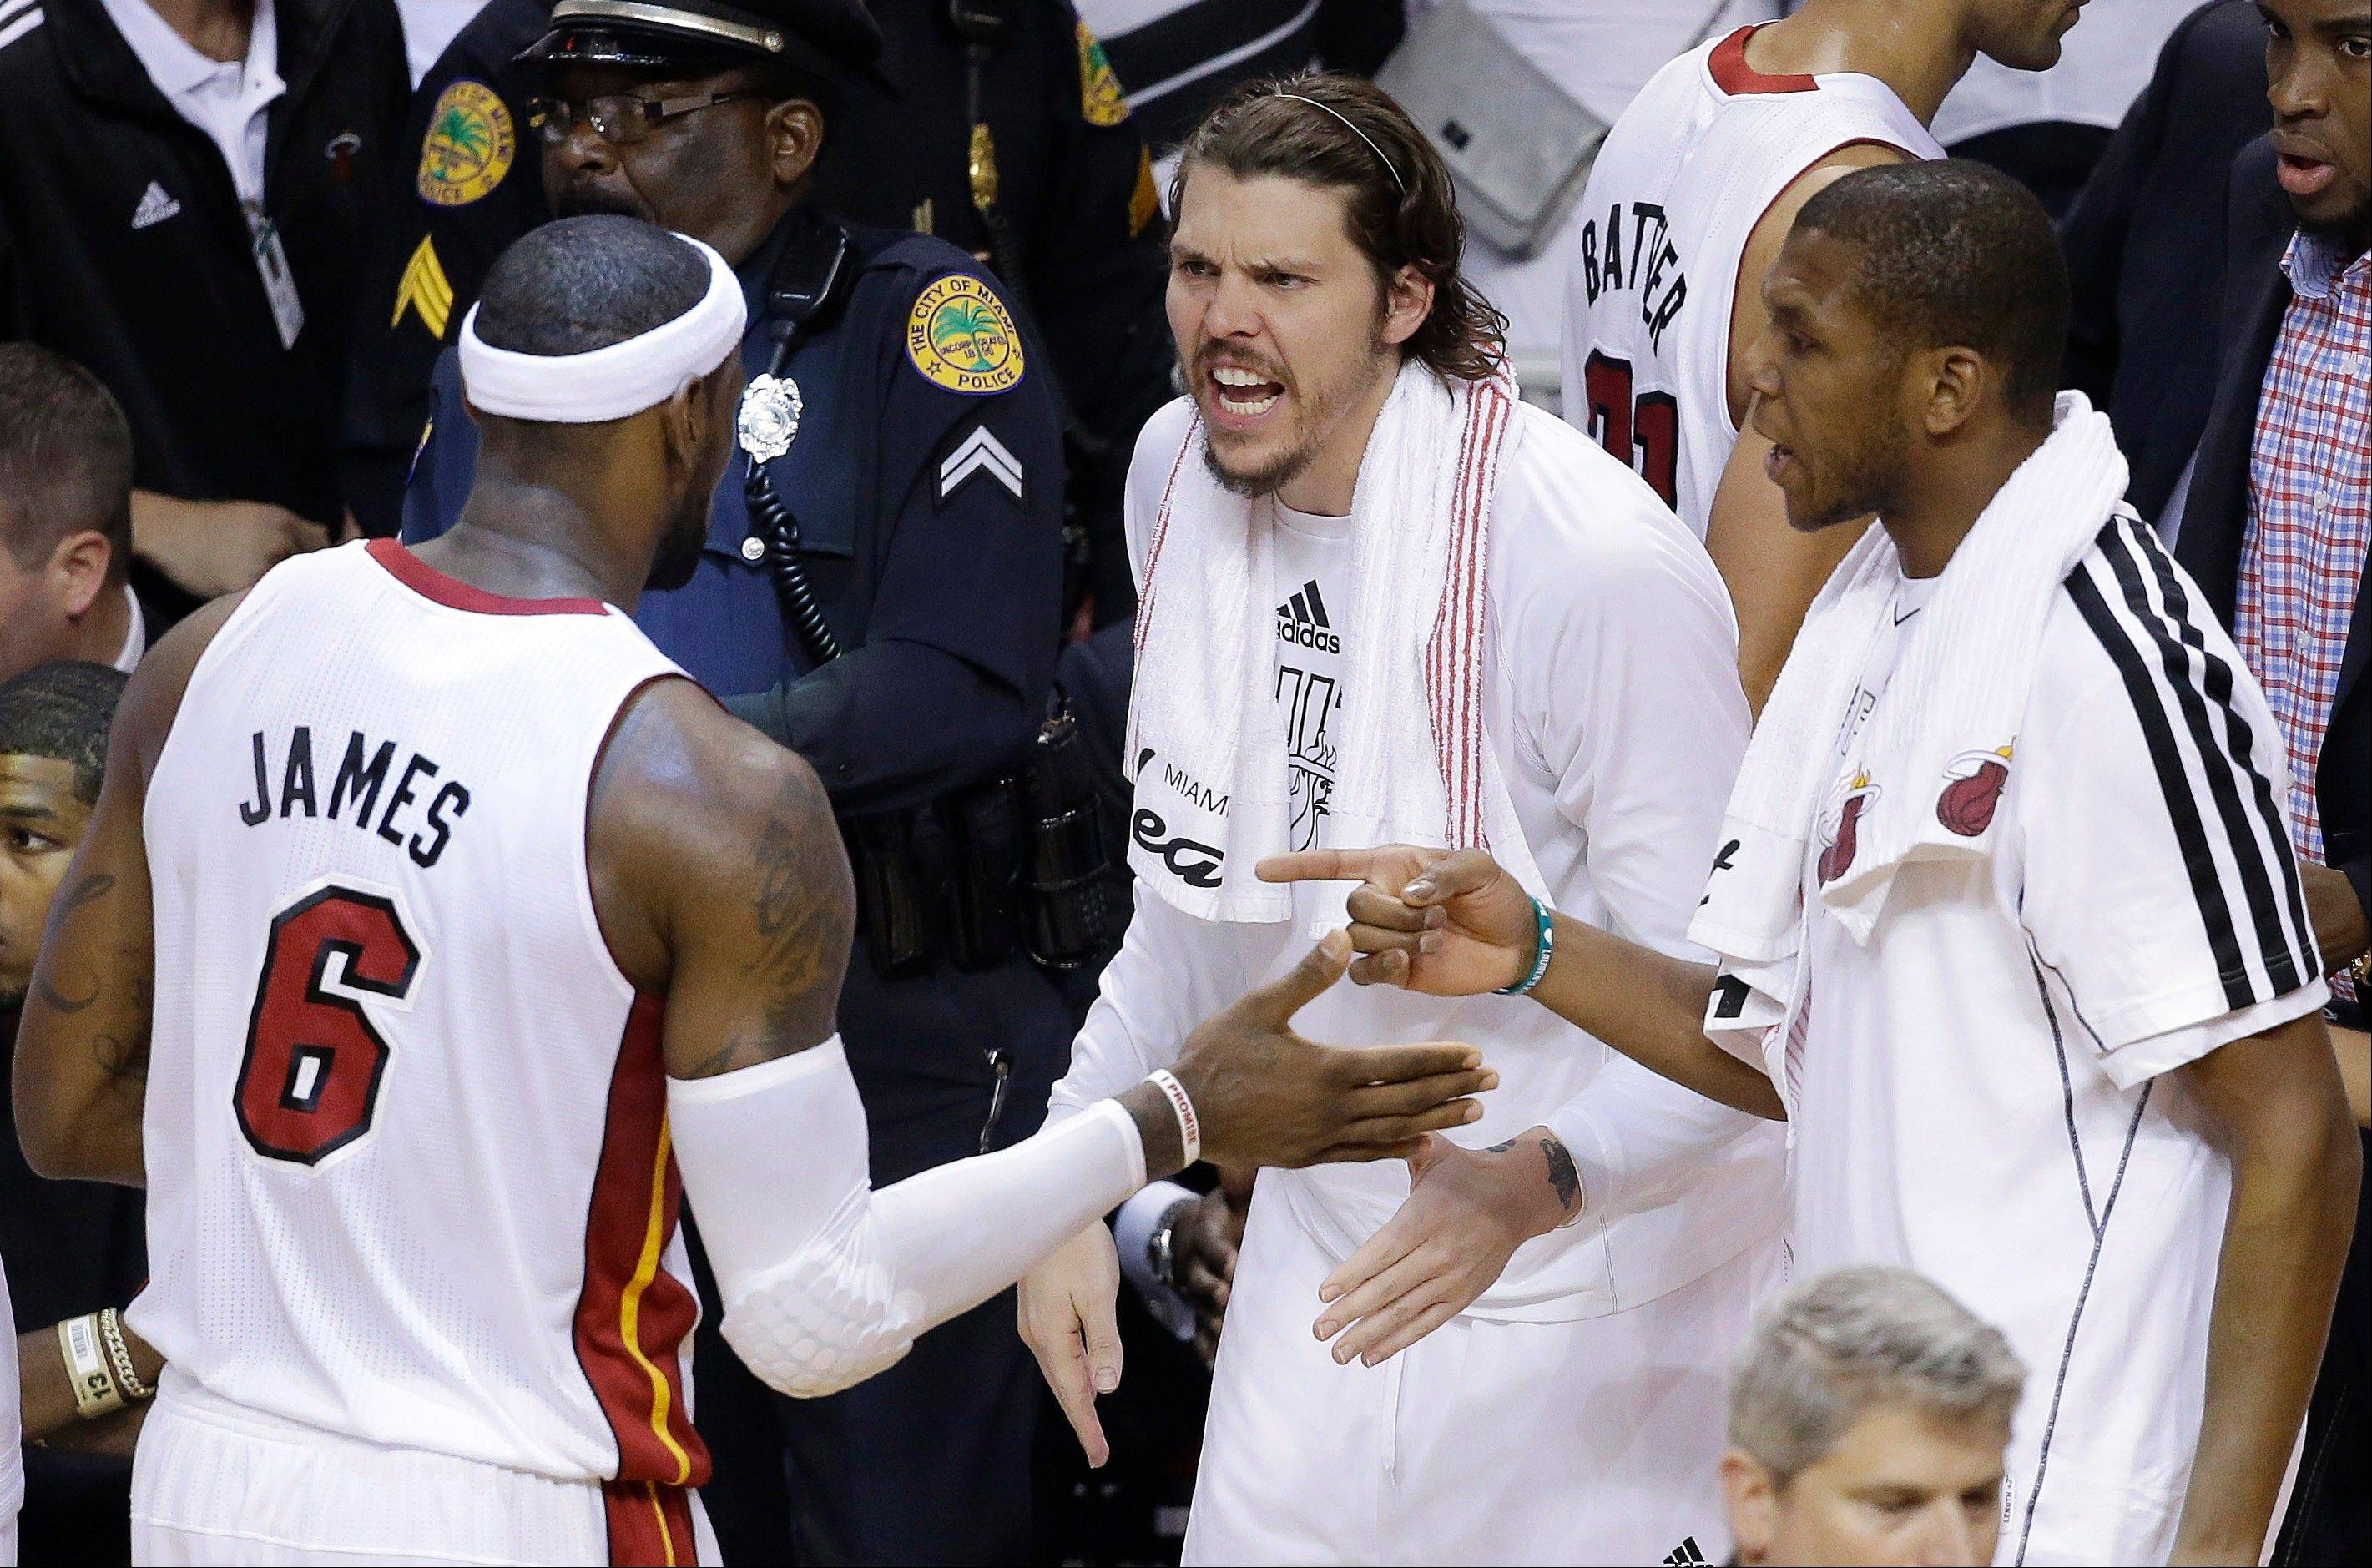 The Miami Heat's LeBron James speaks with teammates in the closing moments of the second half in Game 7 Thursday.